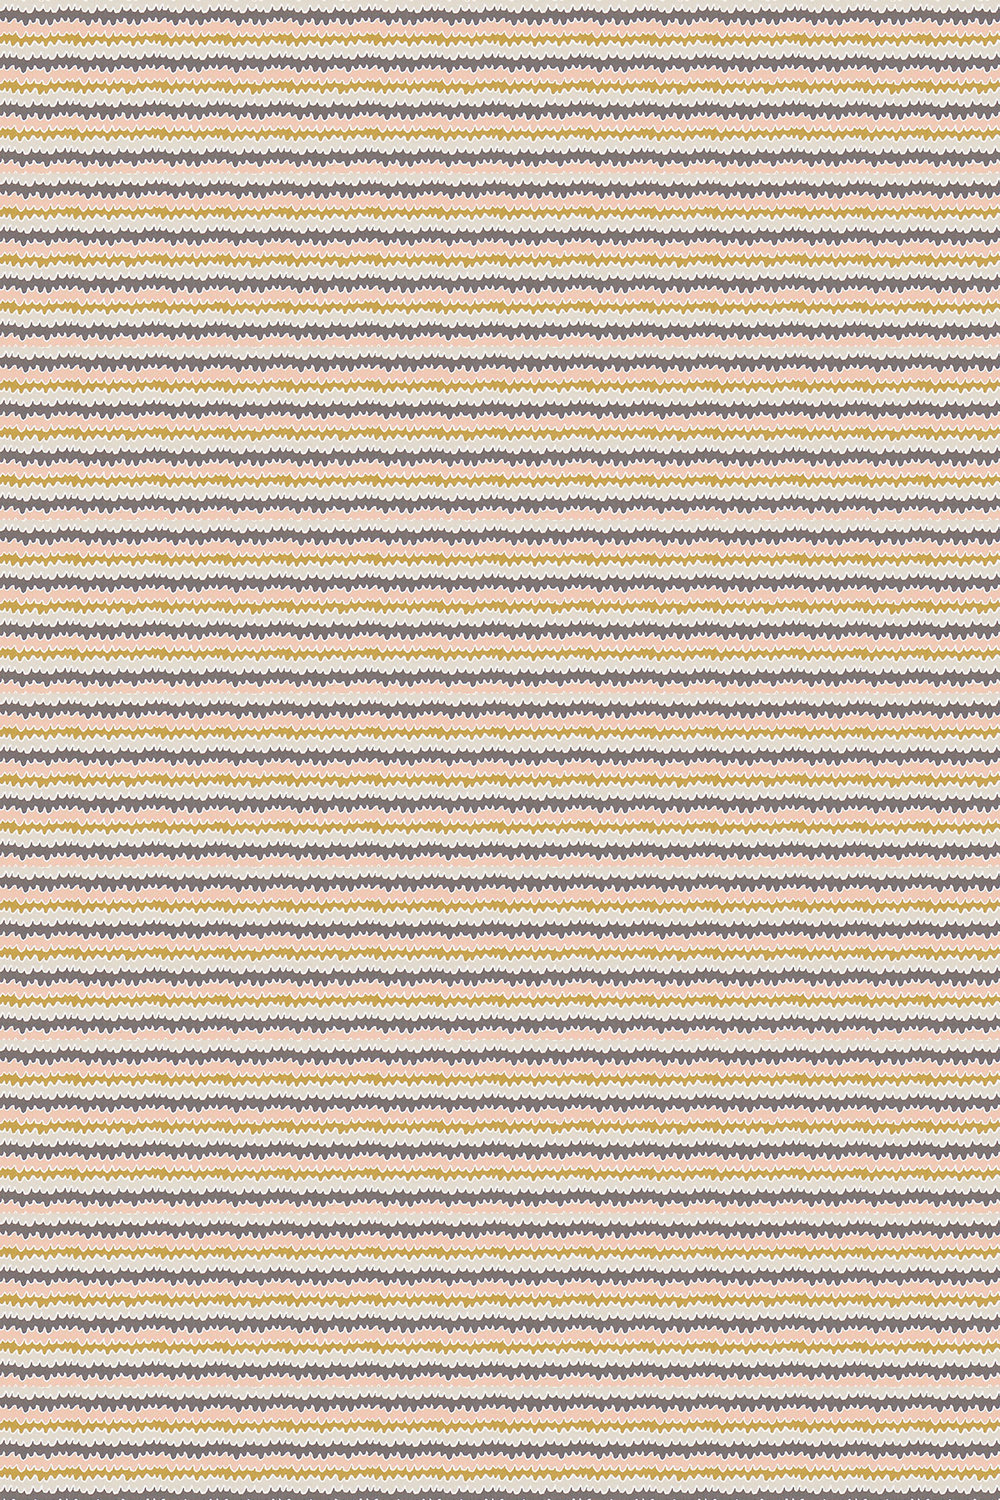 Hetsa Fabric - Parchment, Blush and Toffee - by Scion